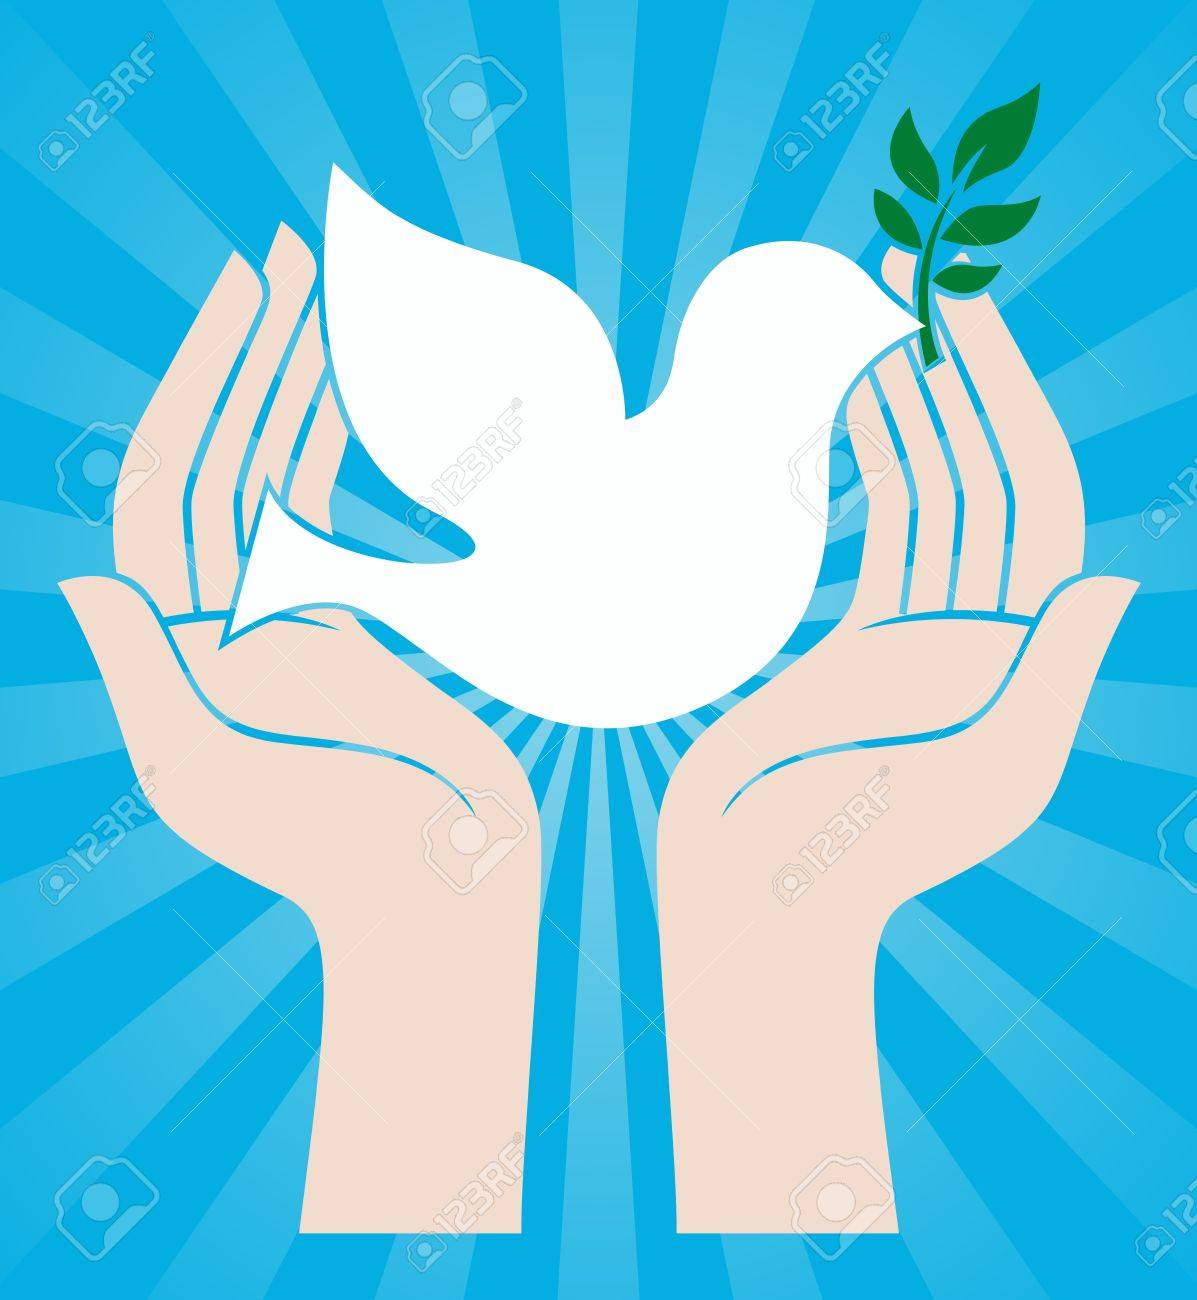 dove peace symbol holding an olive branch stock vector 17800289